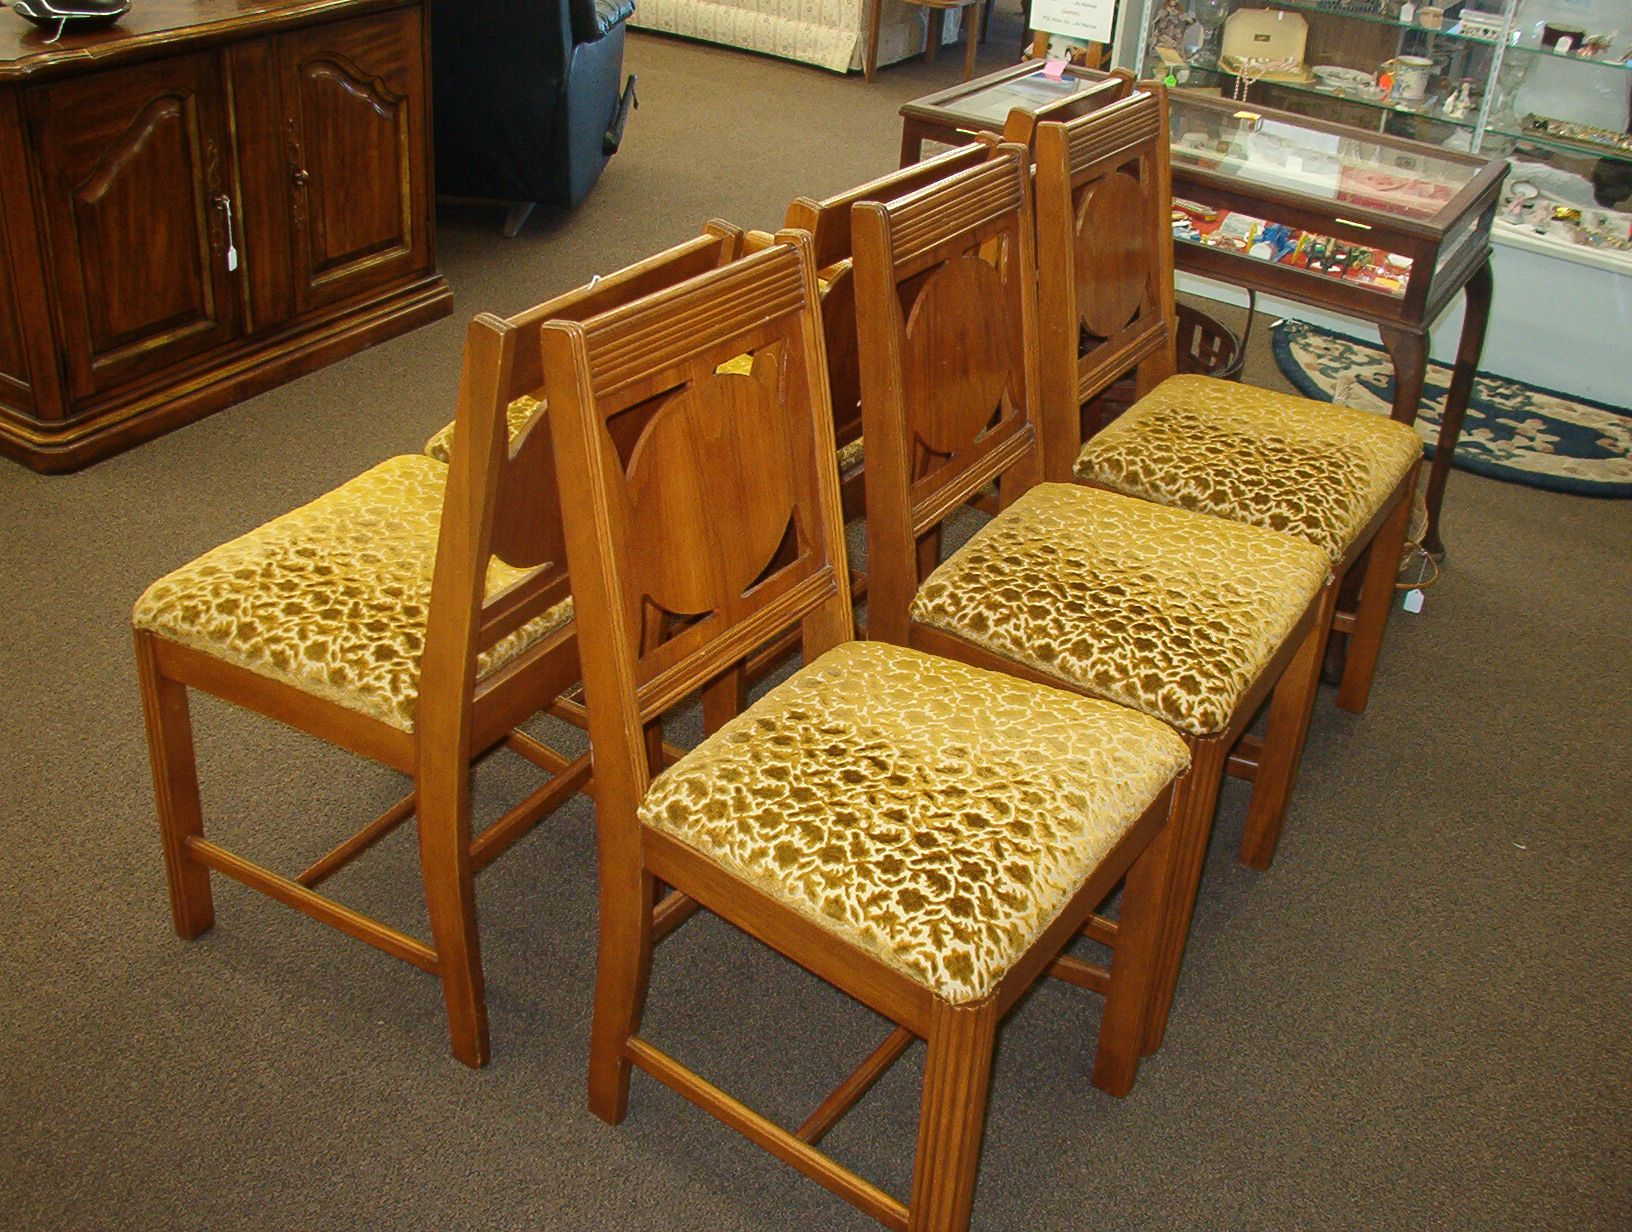 Very Nice Set Of 6 Vintage Dining Room Chairs There Is 1 Arm Chair And